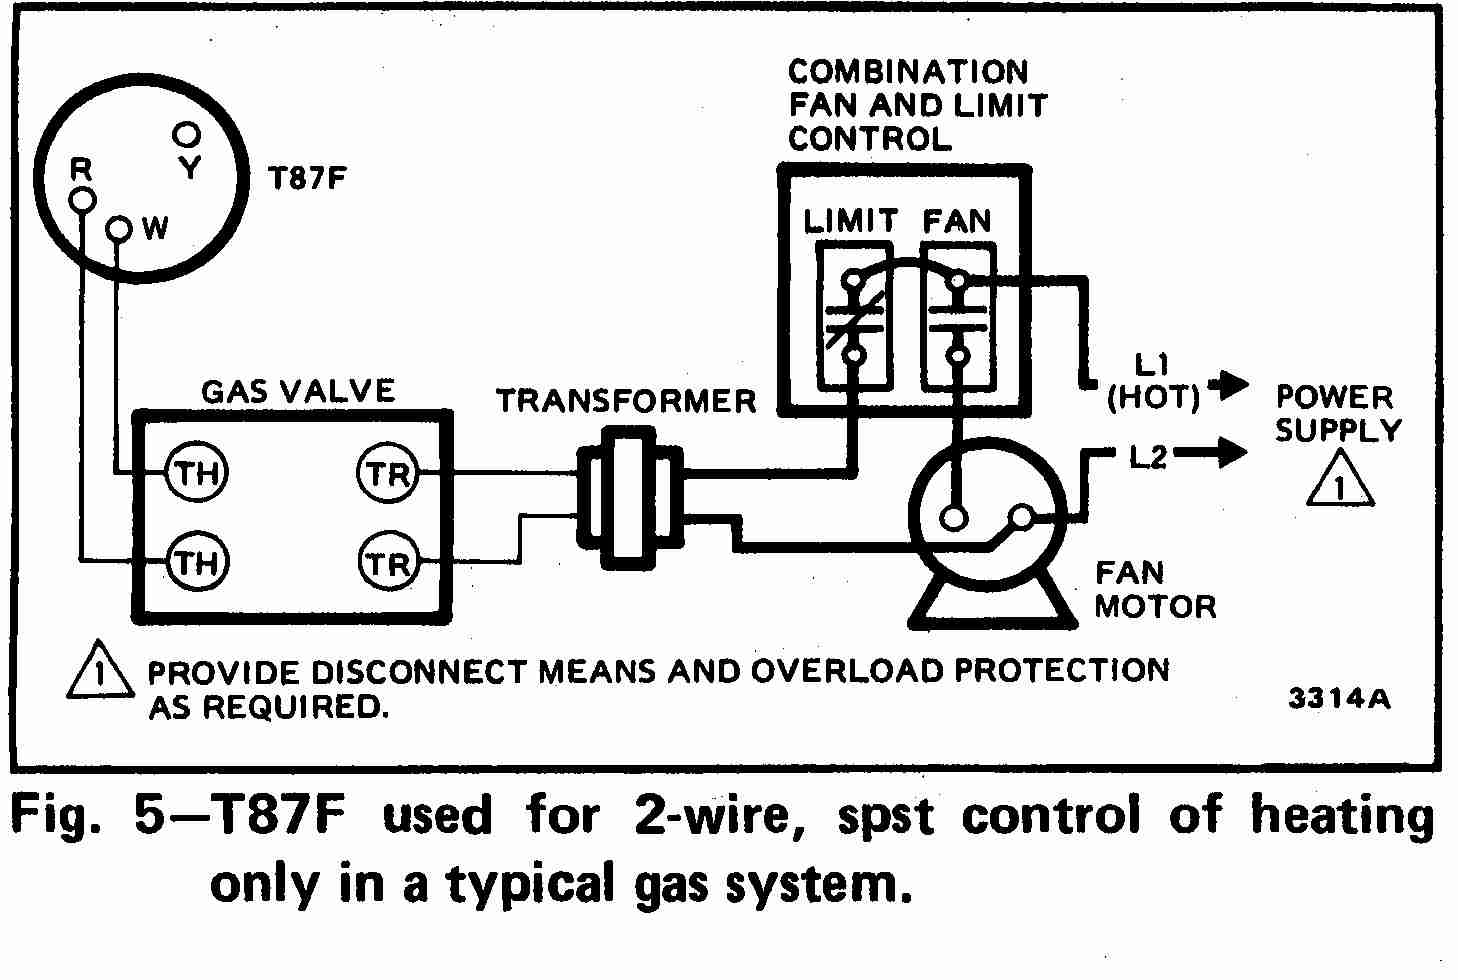 t87f honeywell 2wire diagram #6 Honeywell Thermostat Wiring t87f honeywell 2wire diagram